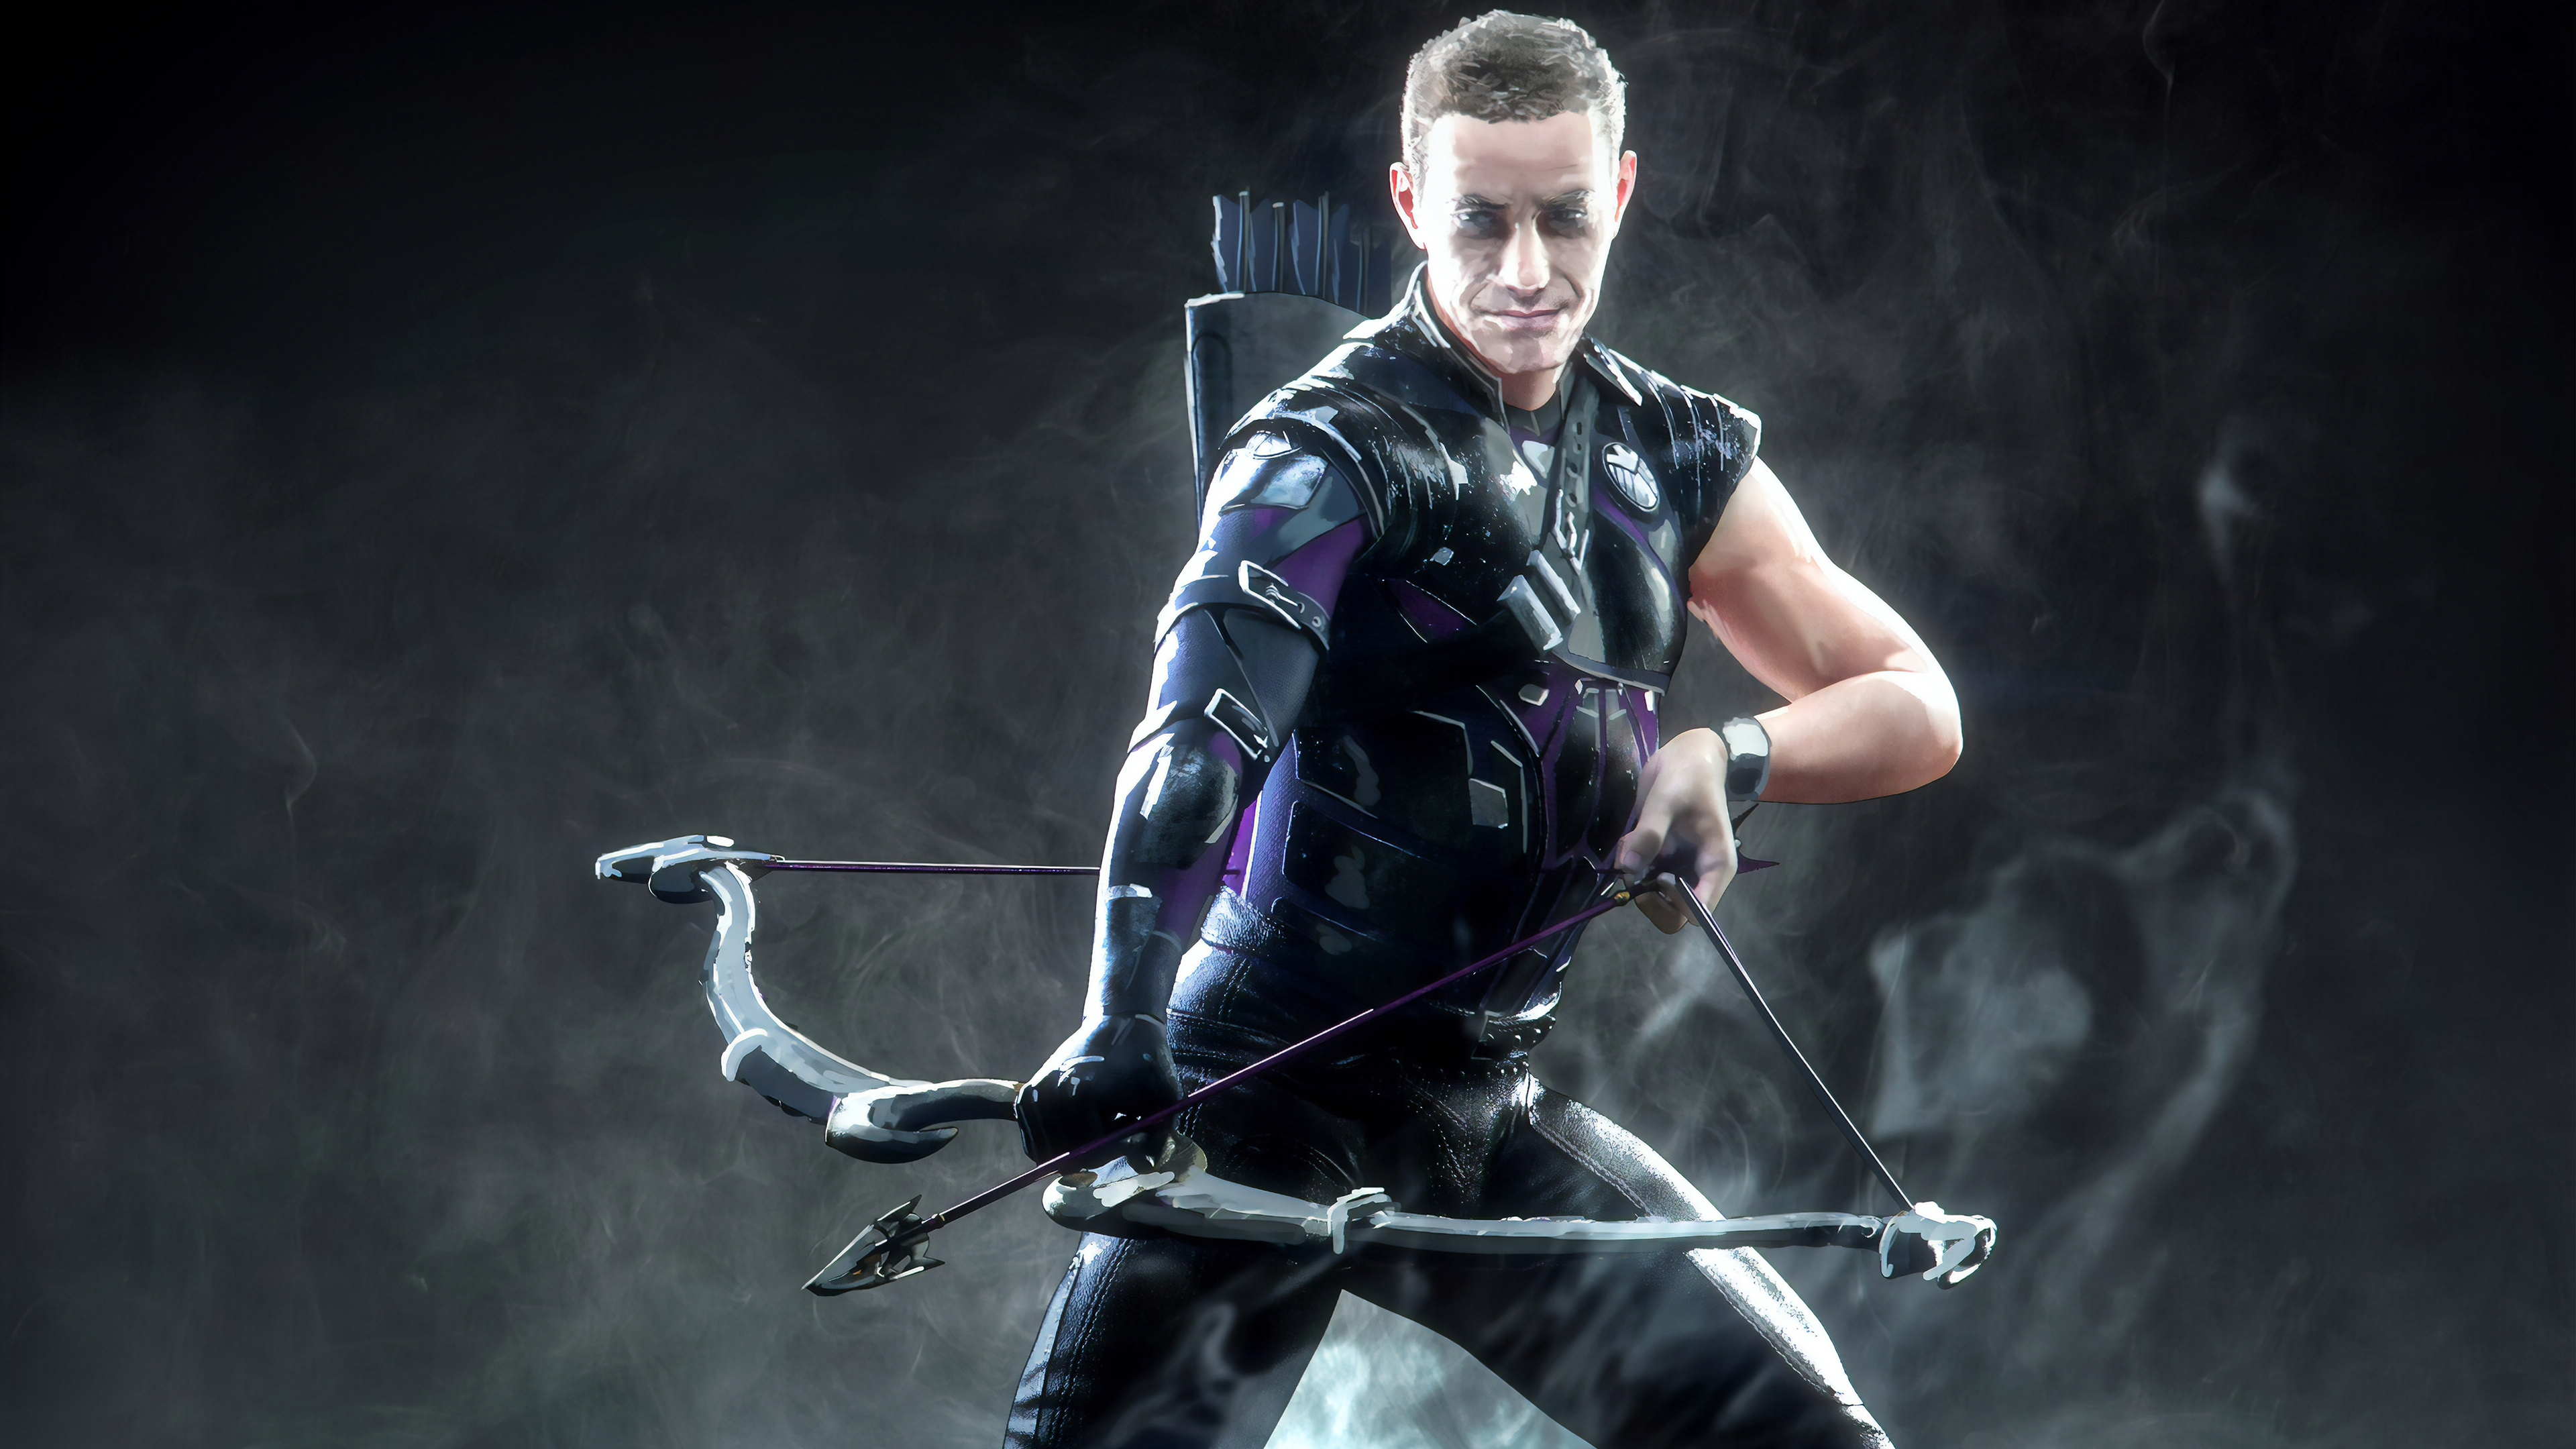 hawkeye marvel superhero art 1565052765 - Hawkeye Marvel Superhero art - superheroes wallpapers, marvel wallpapers, hd-wallpapers, hawkeye wallpapers, artstation wallpapers, 4k-wallpapers